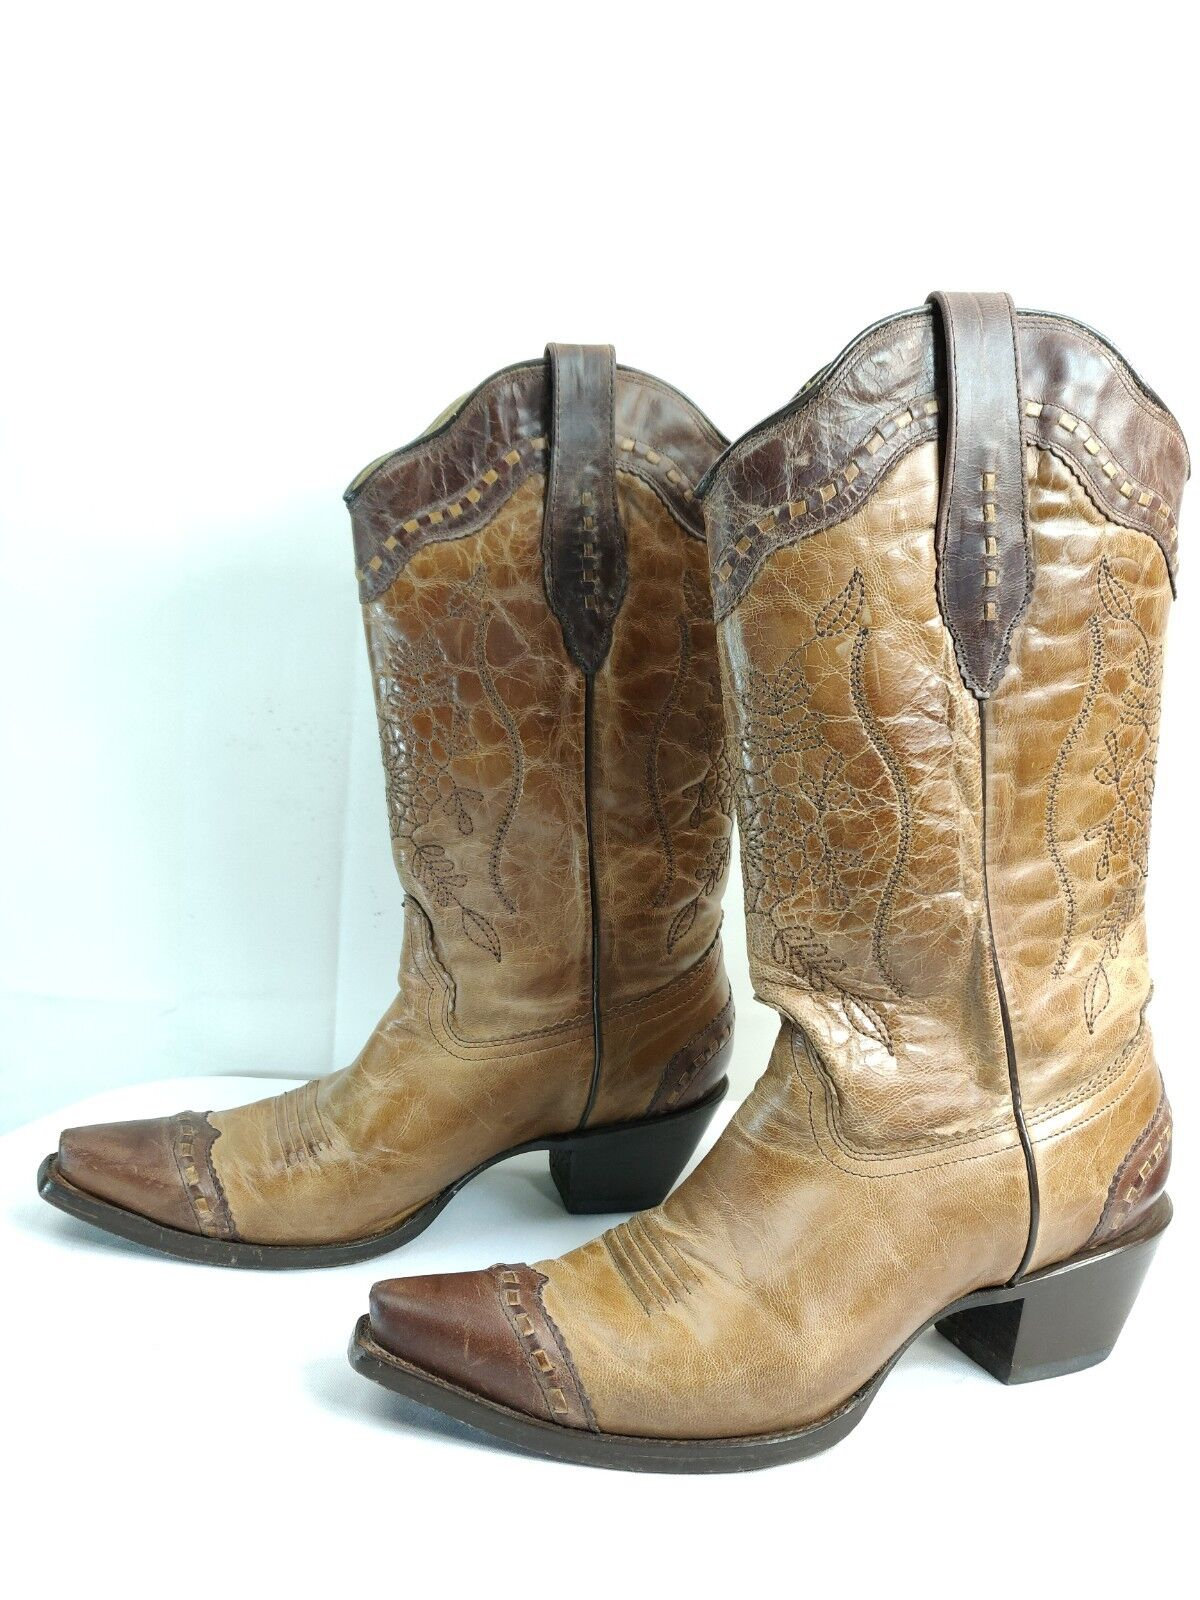 Corral Women's Chocolate Sand Leather Western Cowgirl Boots Size US 10 M